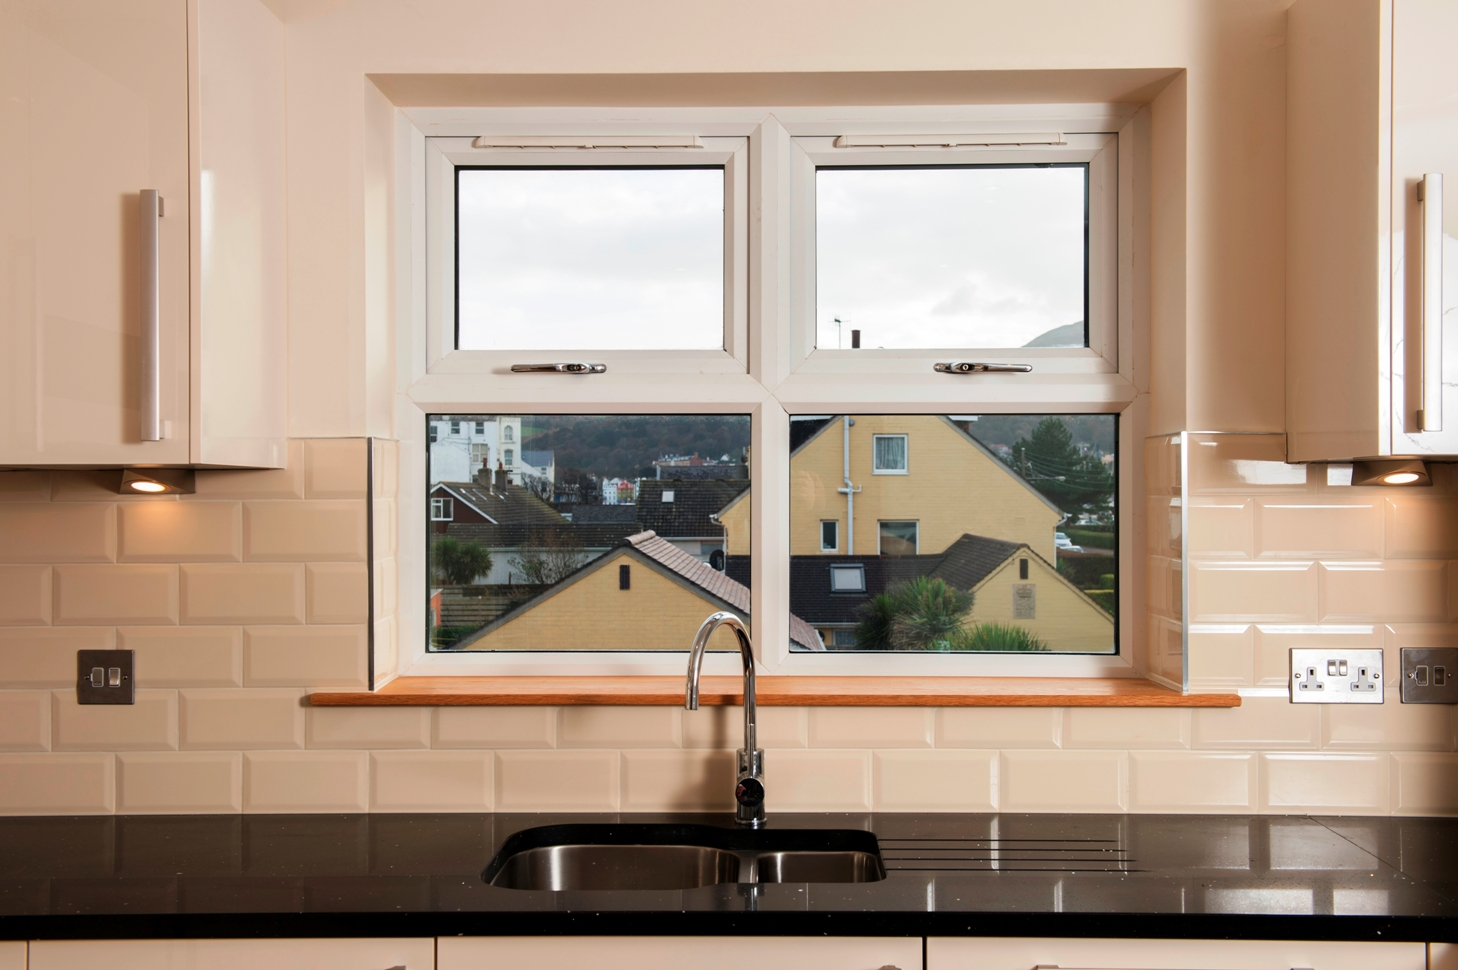 Eurologik windows and doors used in Isle of Man development